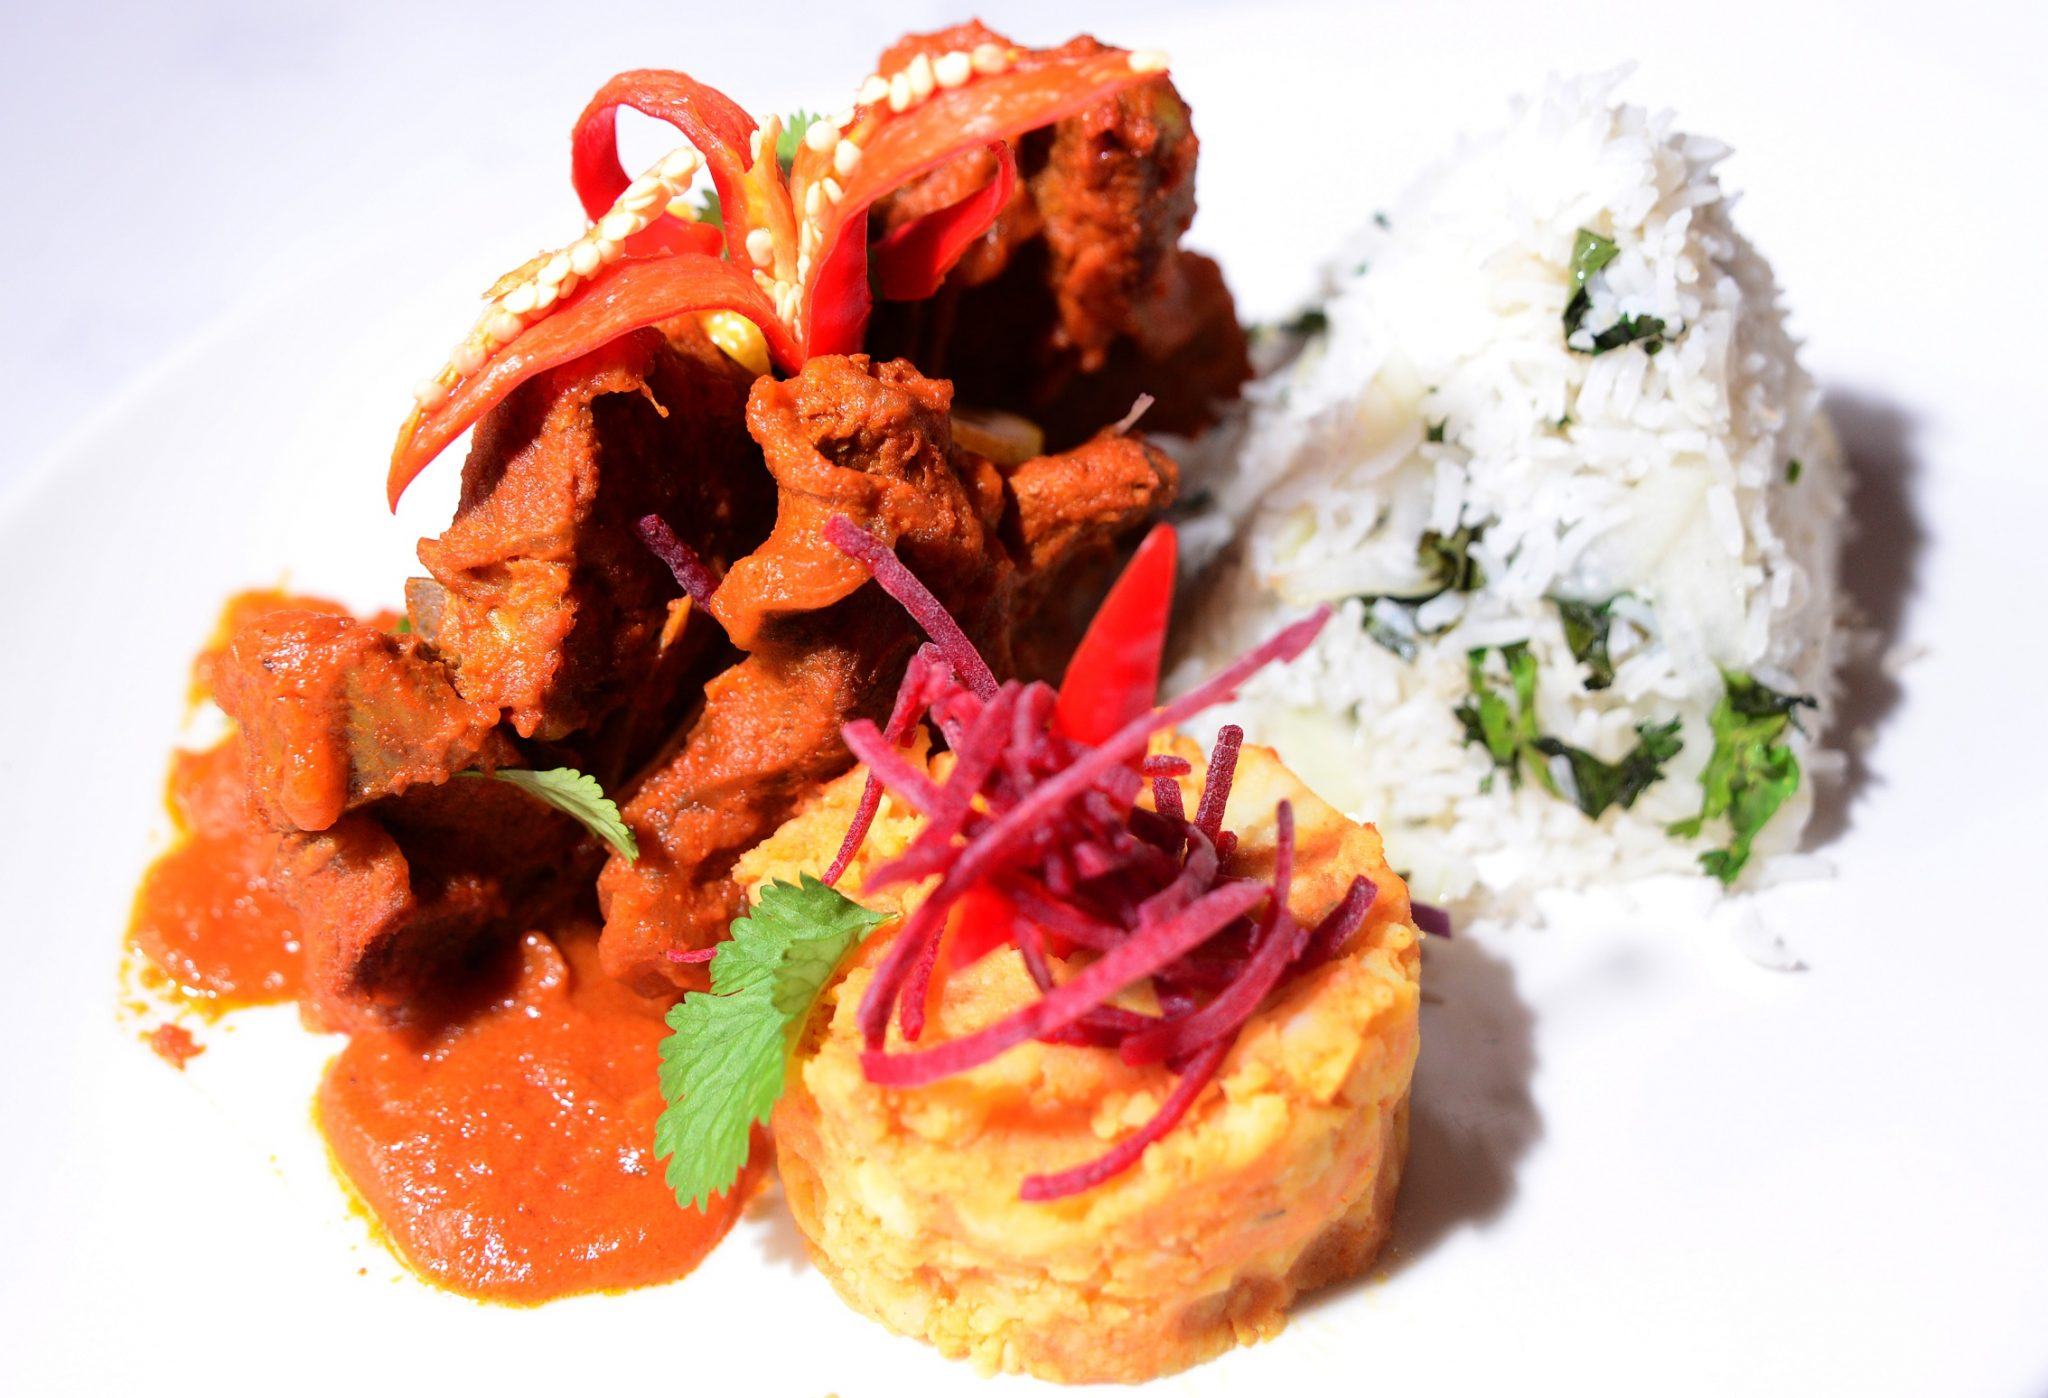 One of Turmeric Gold's tantalising dishes